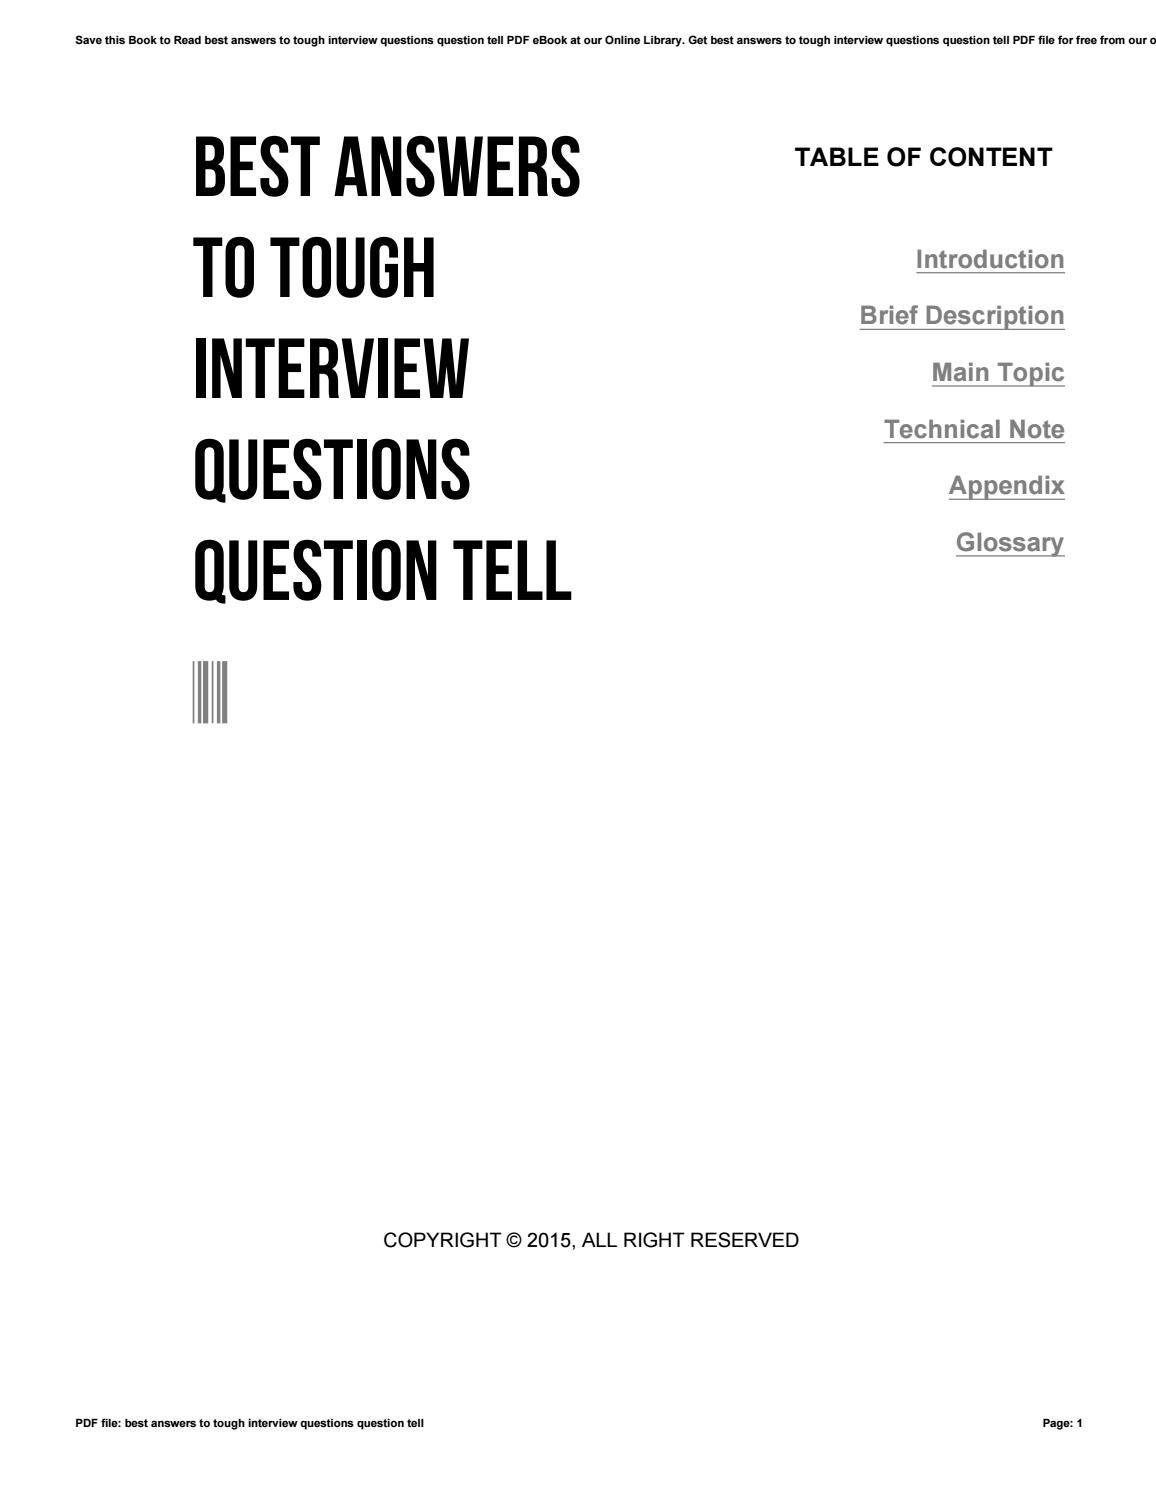 Best answers to tough interview questions question tell by